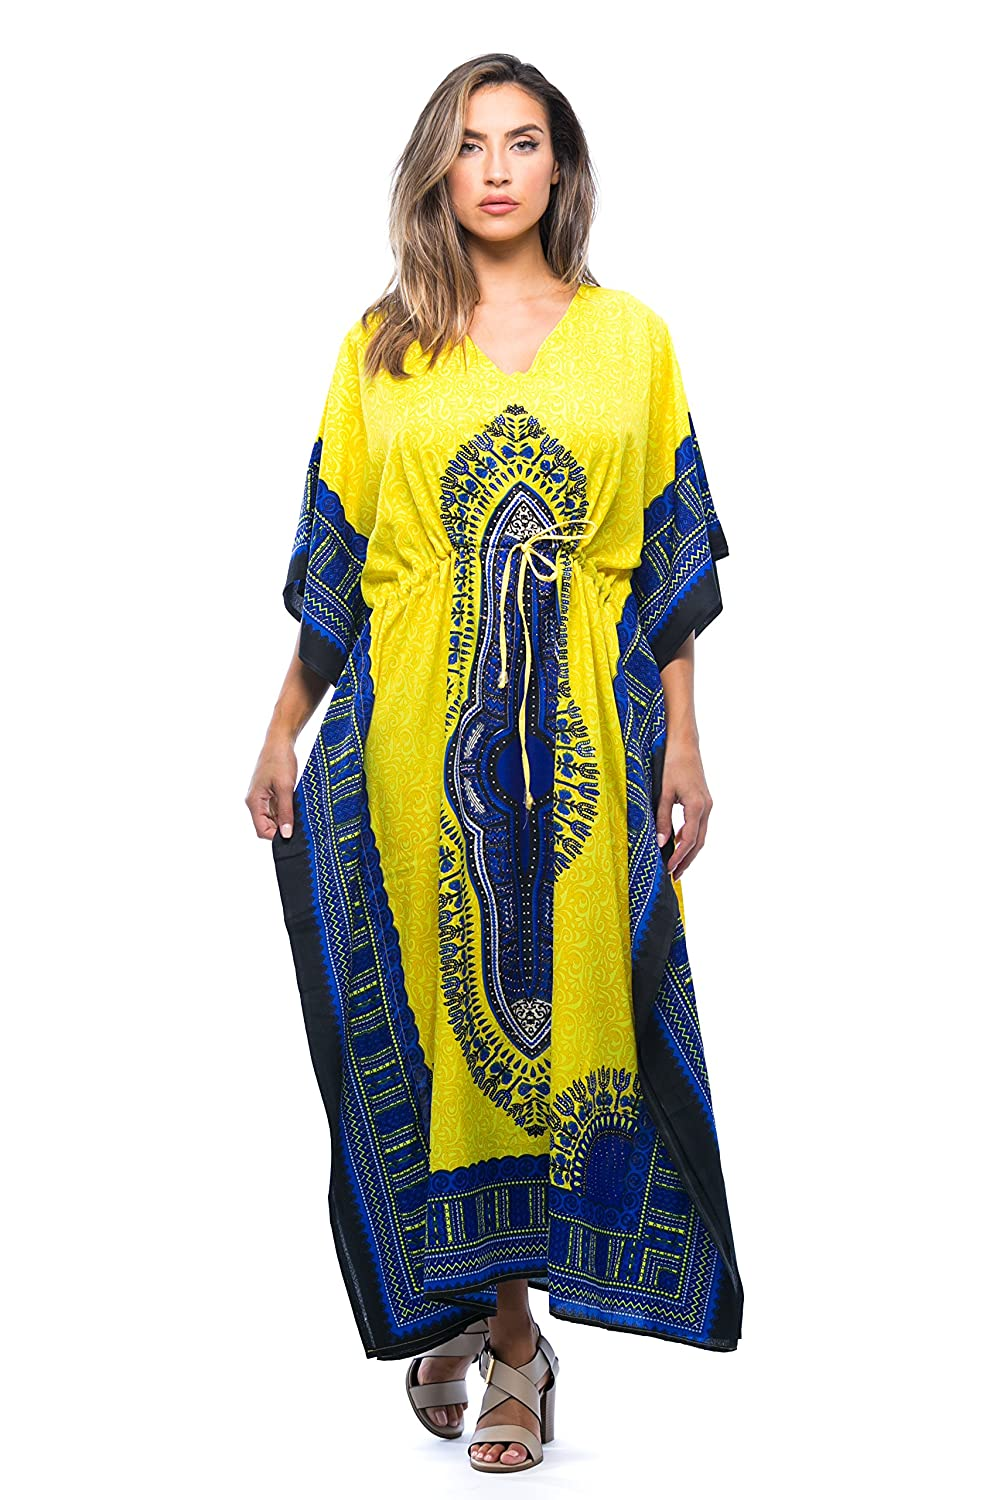 096208a4565 Riviera Sun African Print Dashiki Maxi Caftan for Women at Amazon Women s  Clothing store